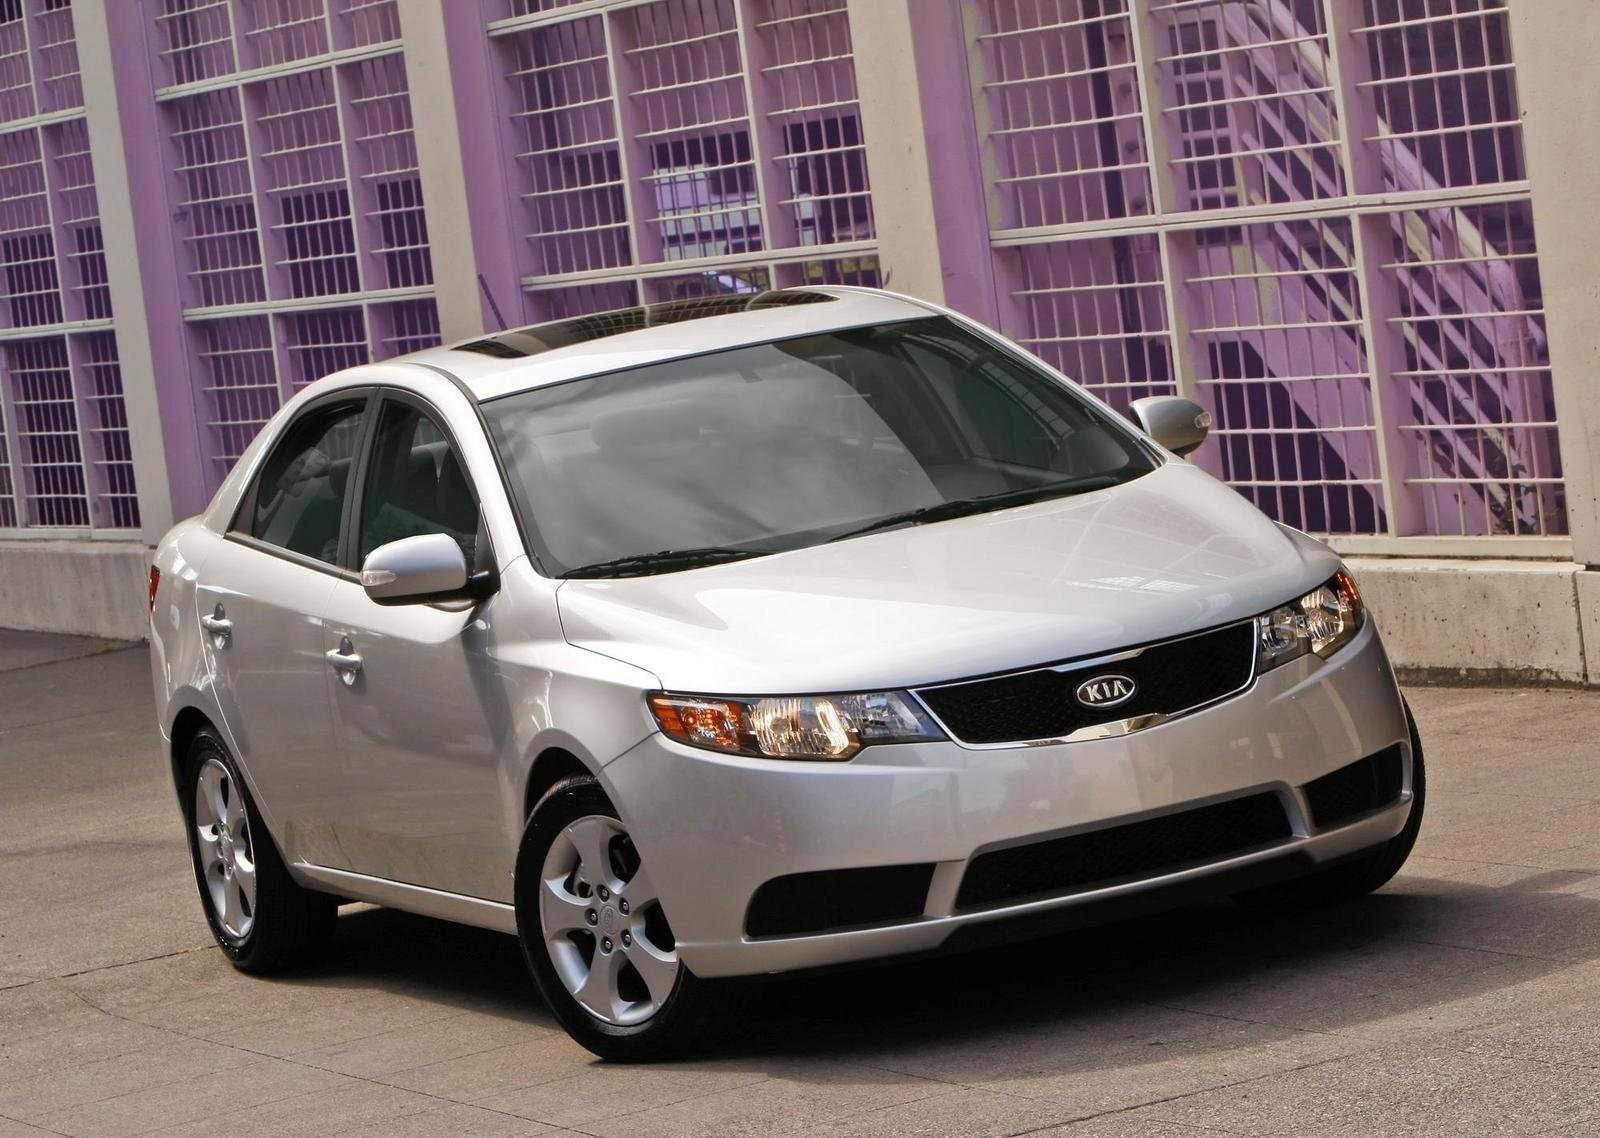 2010 kia forte picture 346718 car review top speed. Black Bedroom Furniture Sets. Home Design Ideas